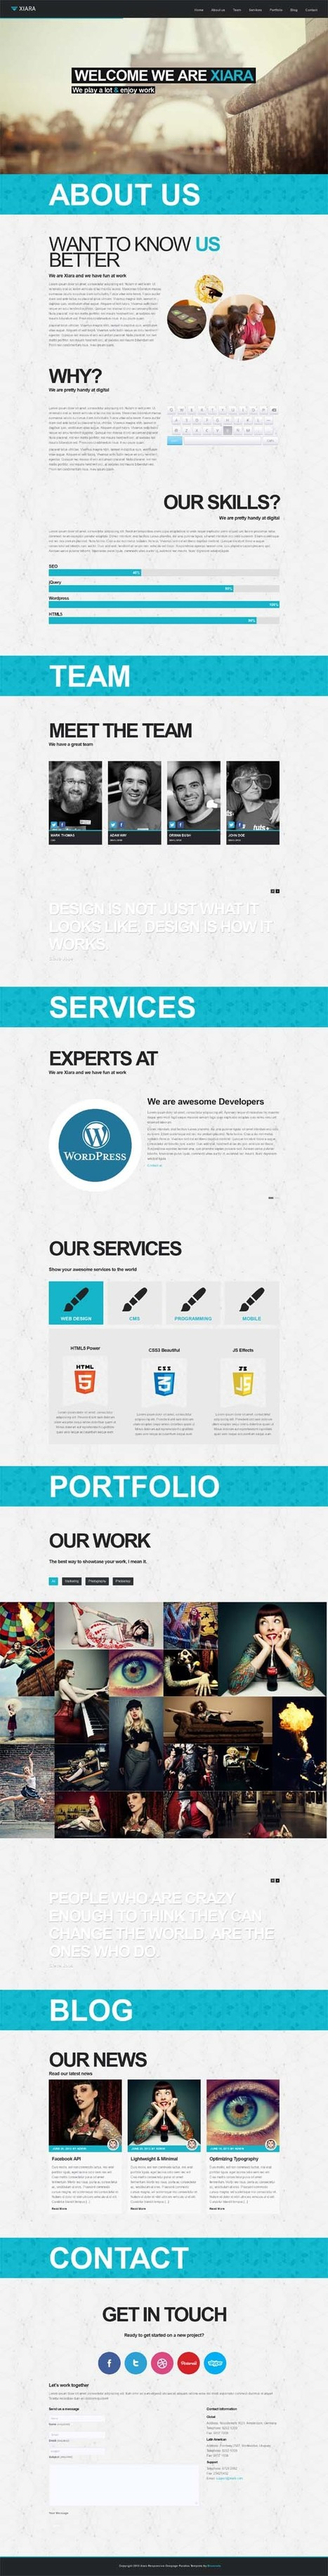 Xiara, WordPress One Page Parallax Theme | WP Download | keeping the ink fresh | Scoop.it